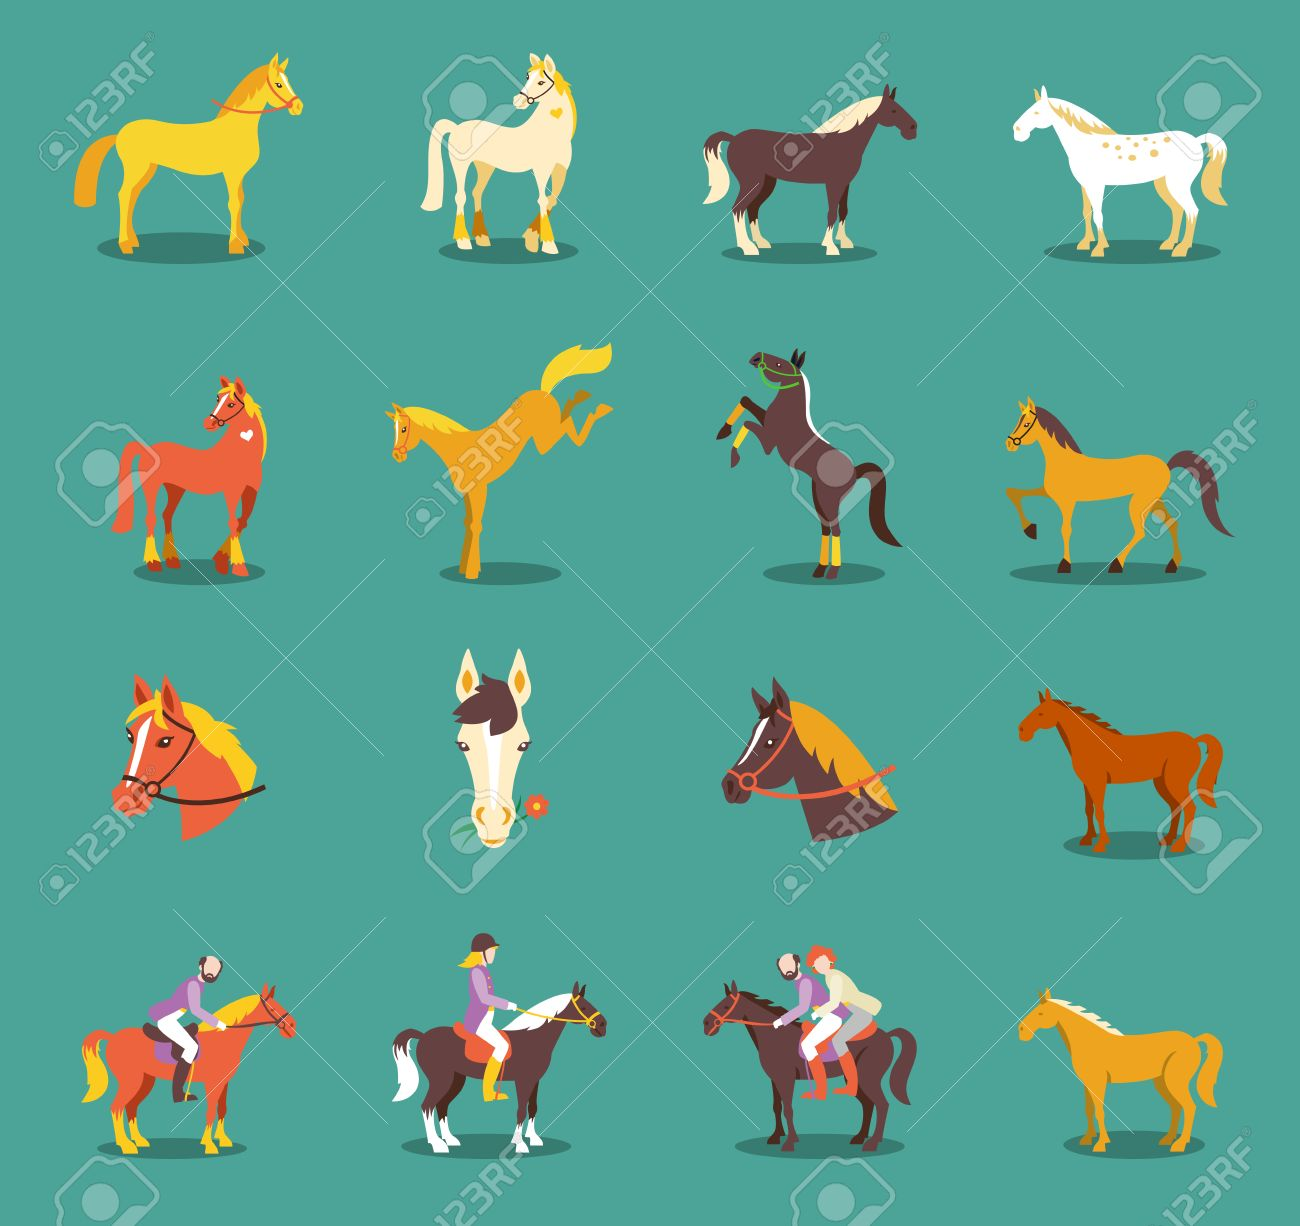 Group of the horses isolated on the blue background. Cute cartoon horse farm animals. - 60555580